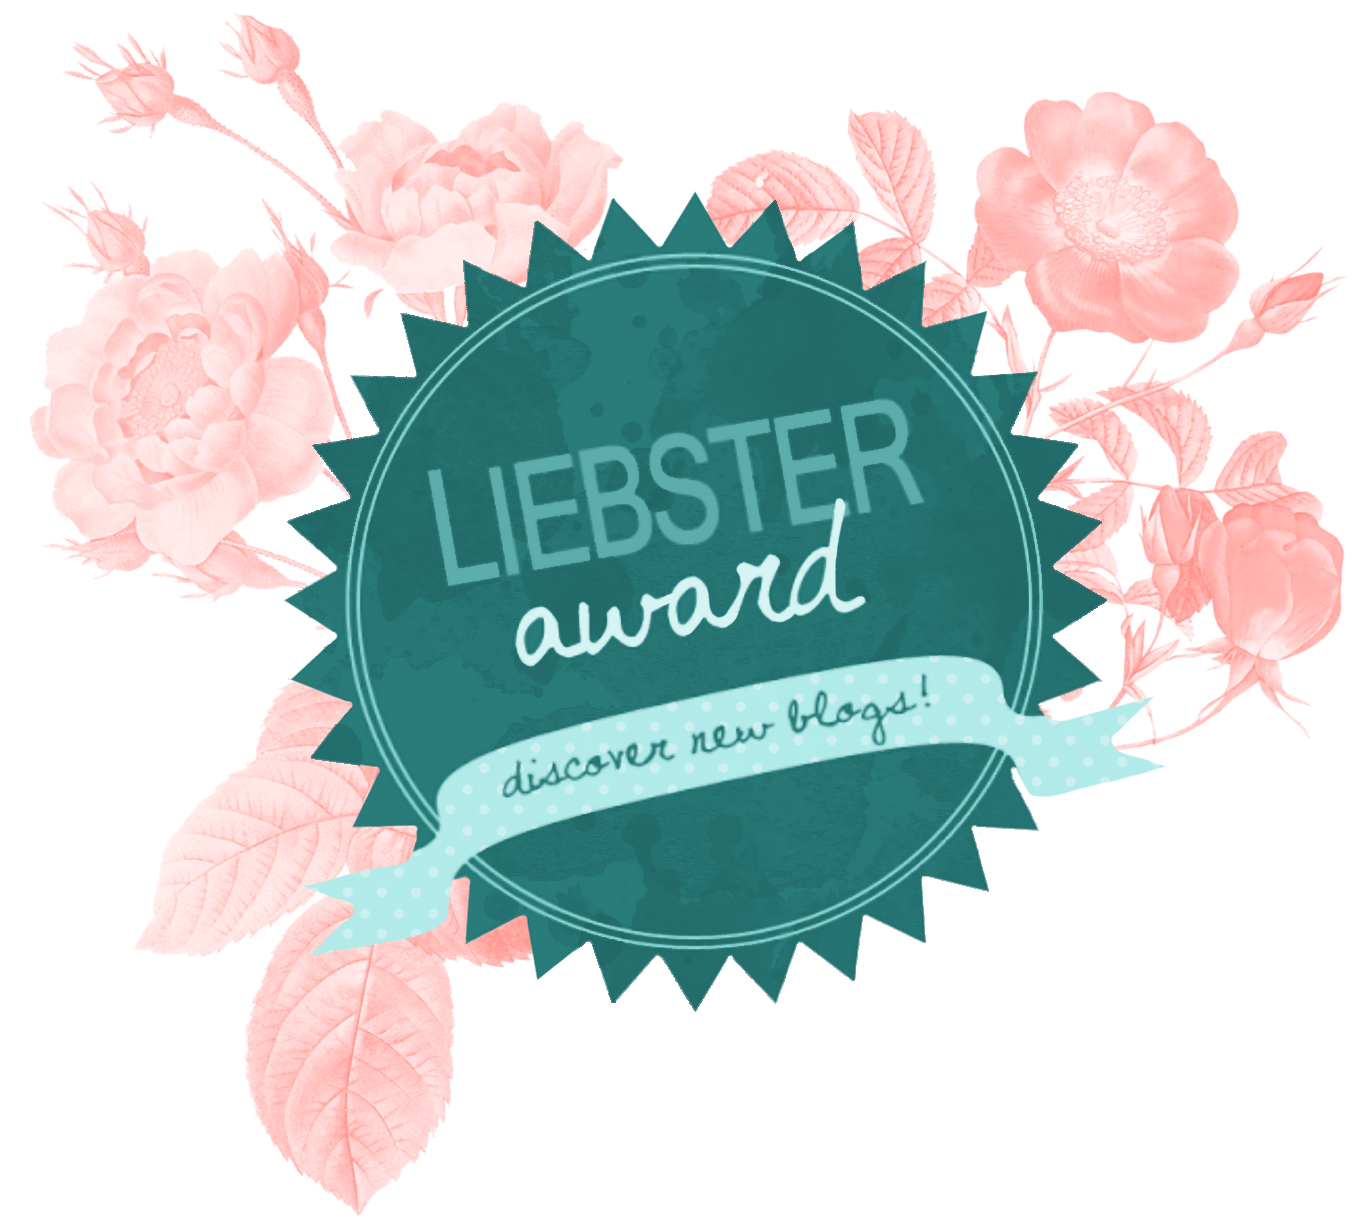 Liebster Award logo